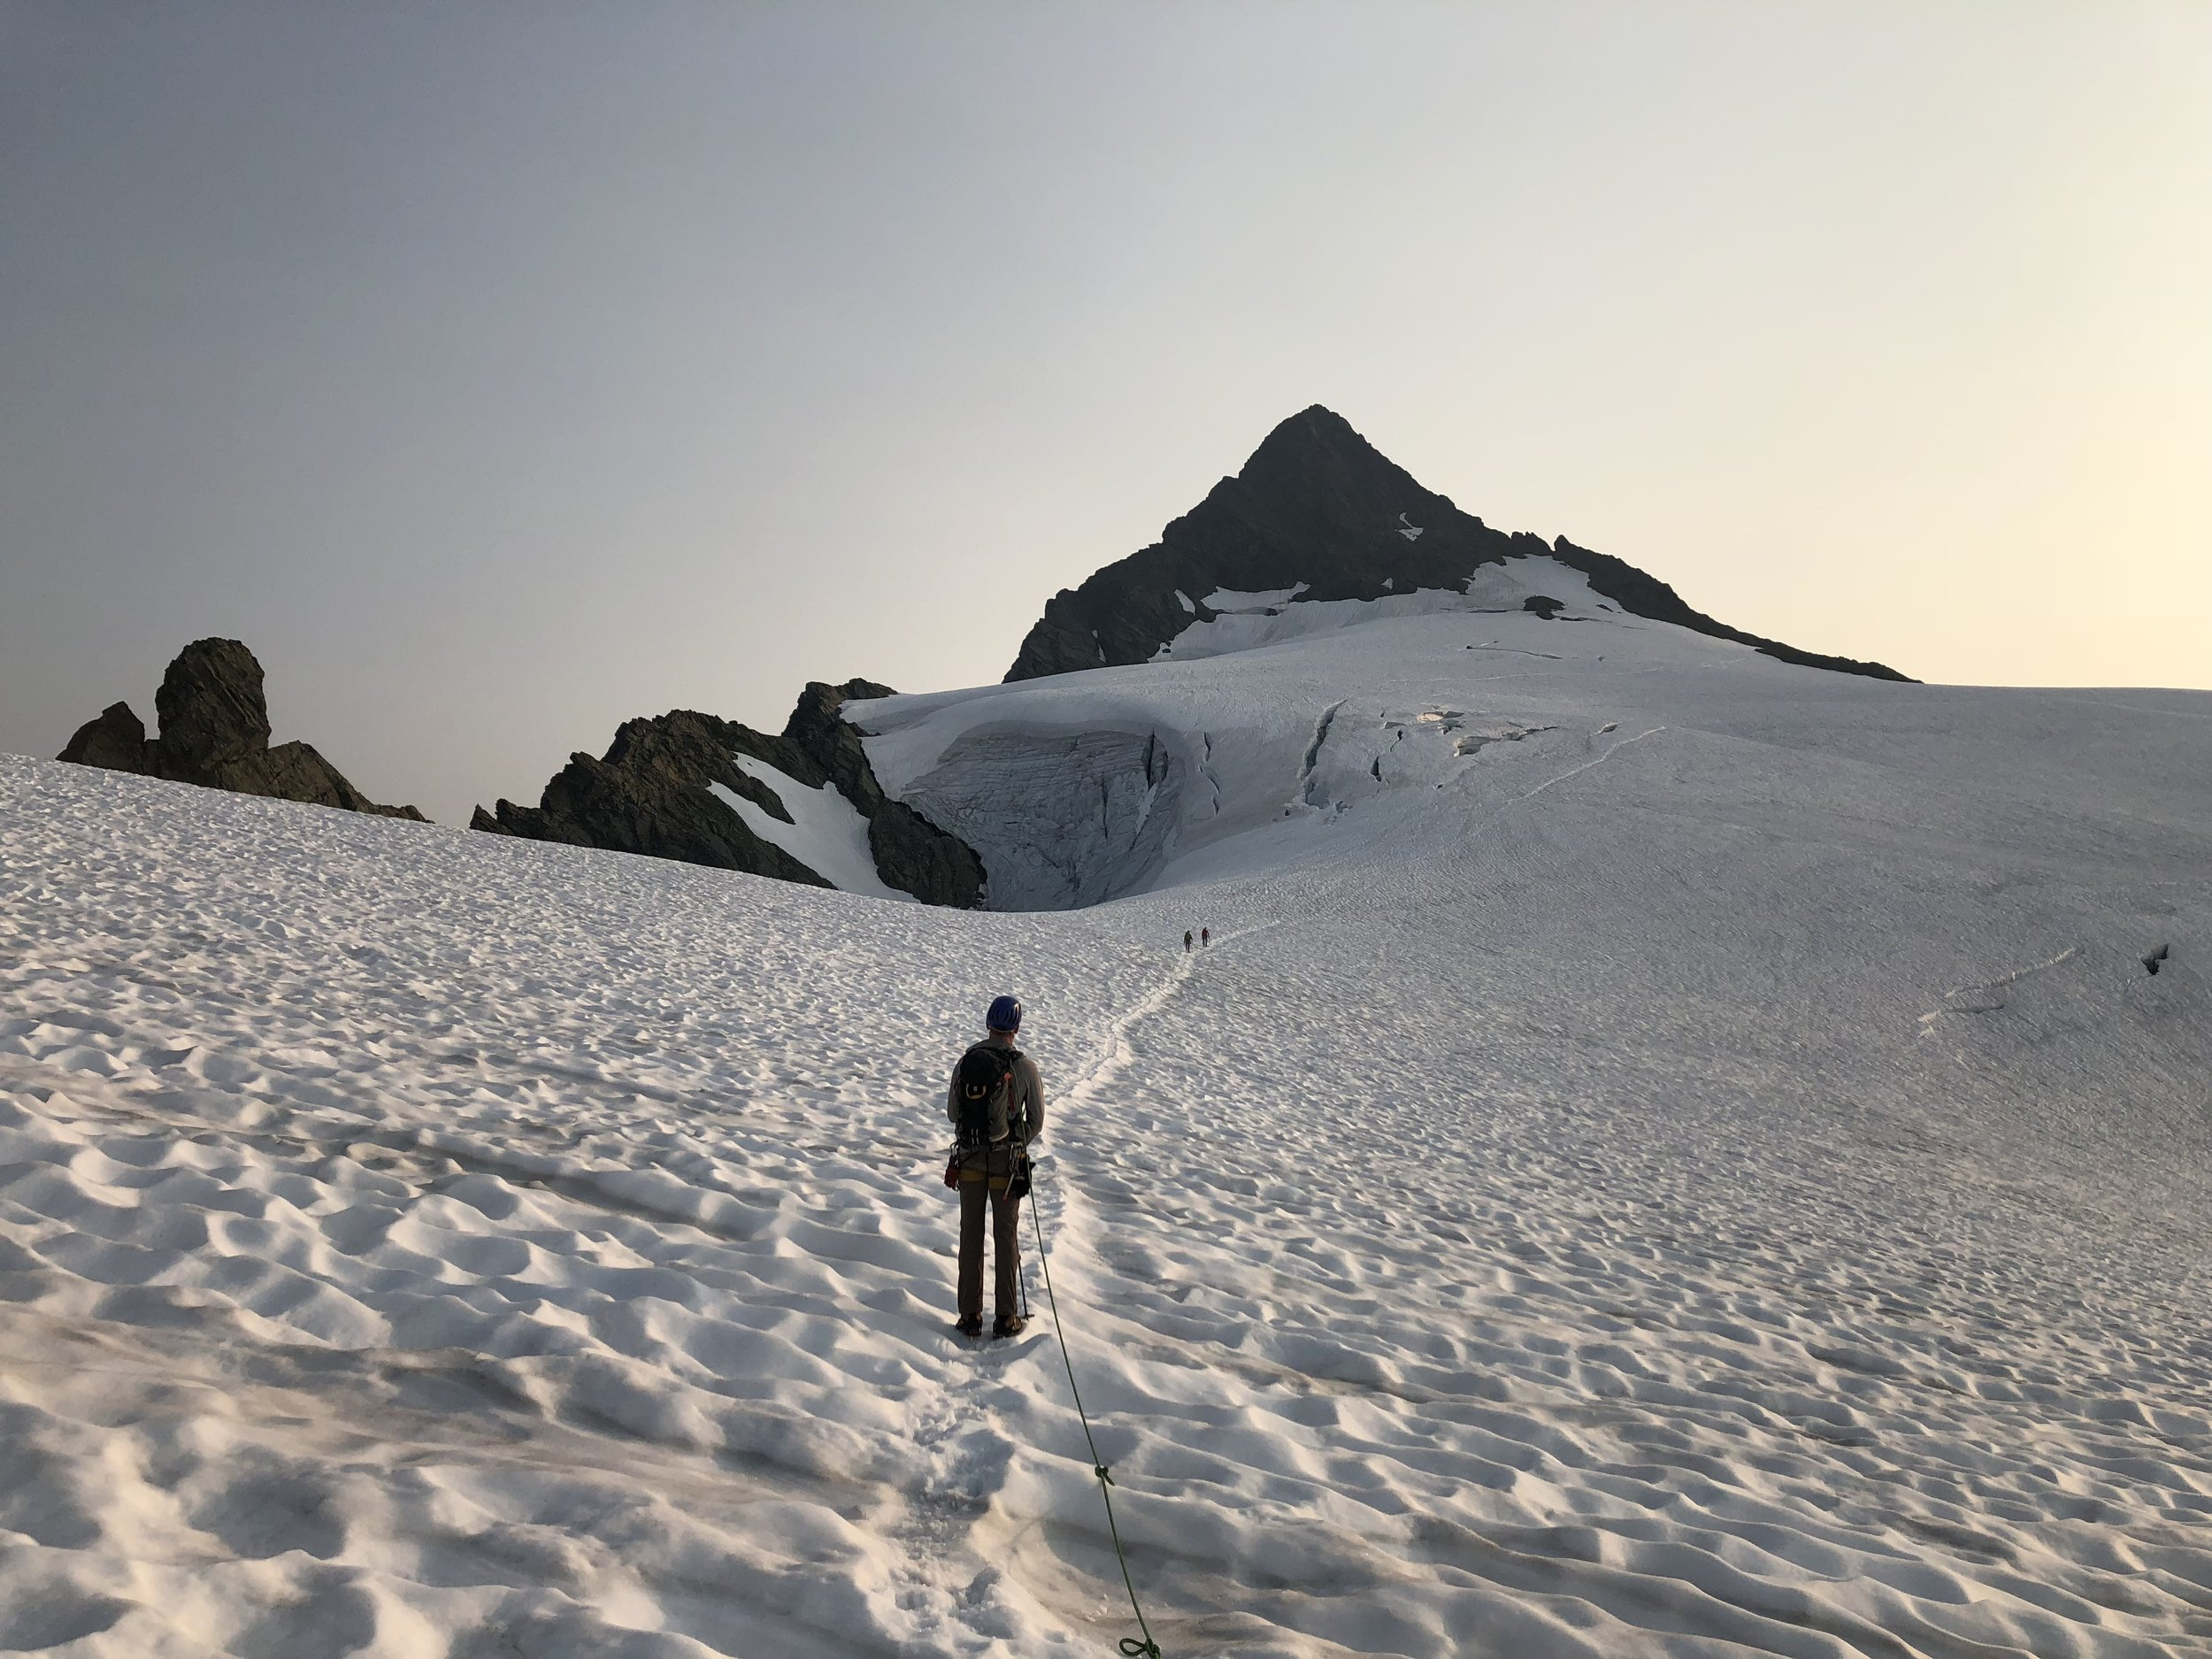 Approaching Shuksan's summit pyramid.